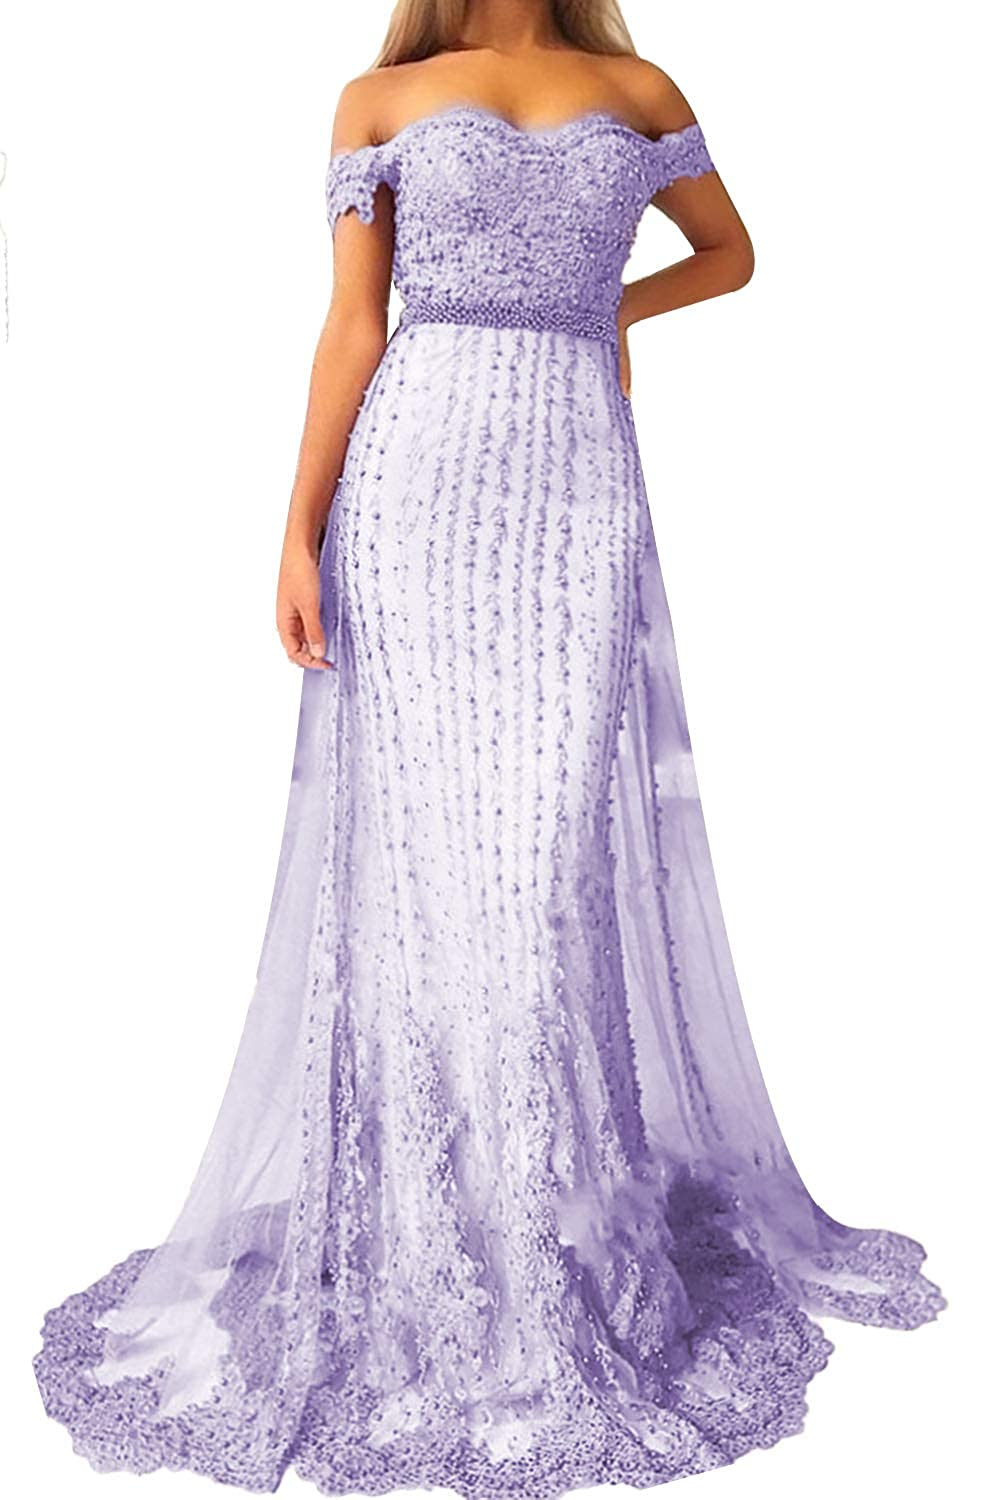 Lavender Promworld Women's Off The Shoulder Lace Applique Beaded Bridesmaid Dress Long Prom Dress with Train